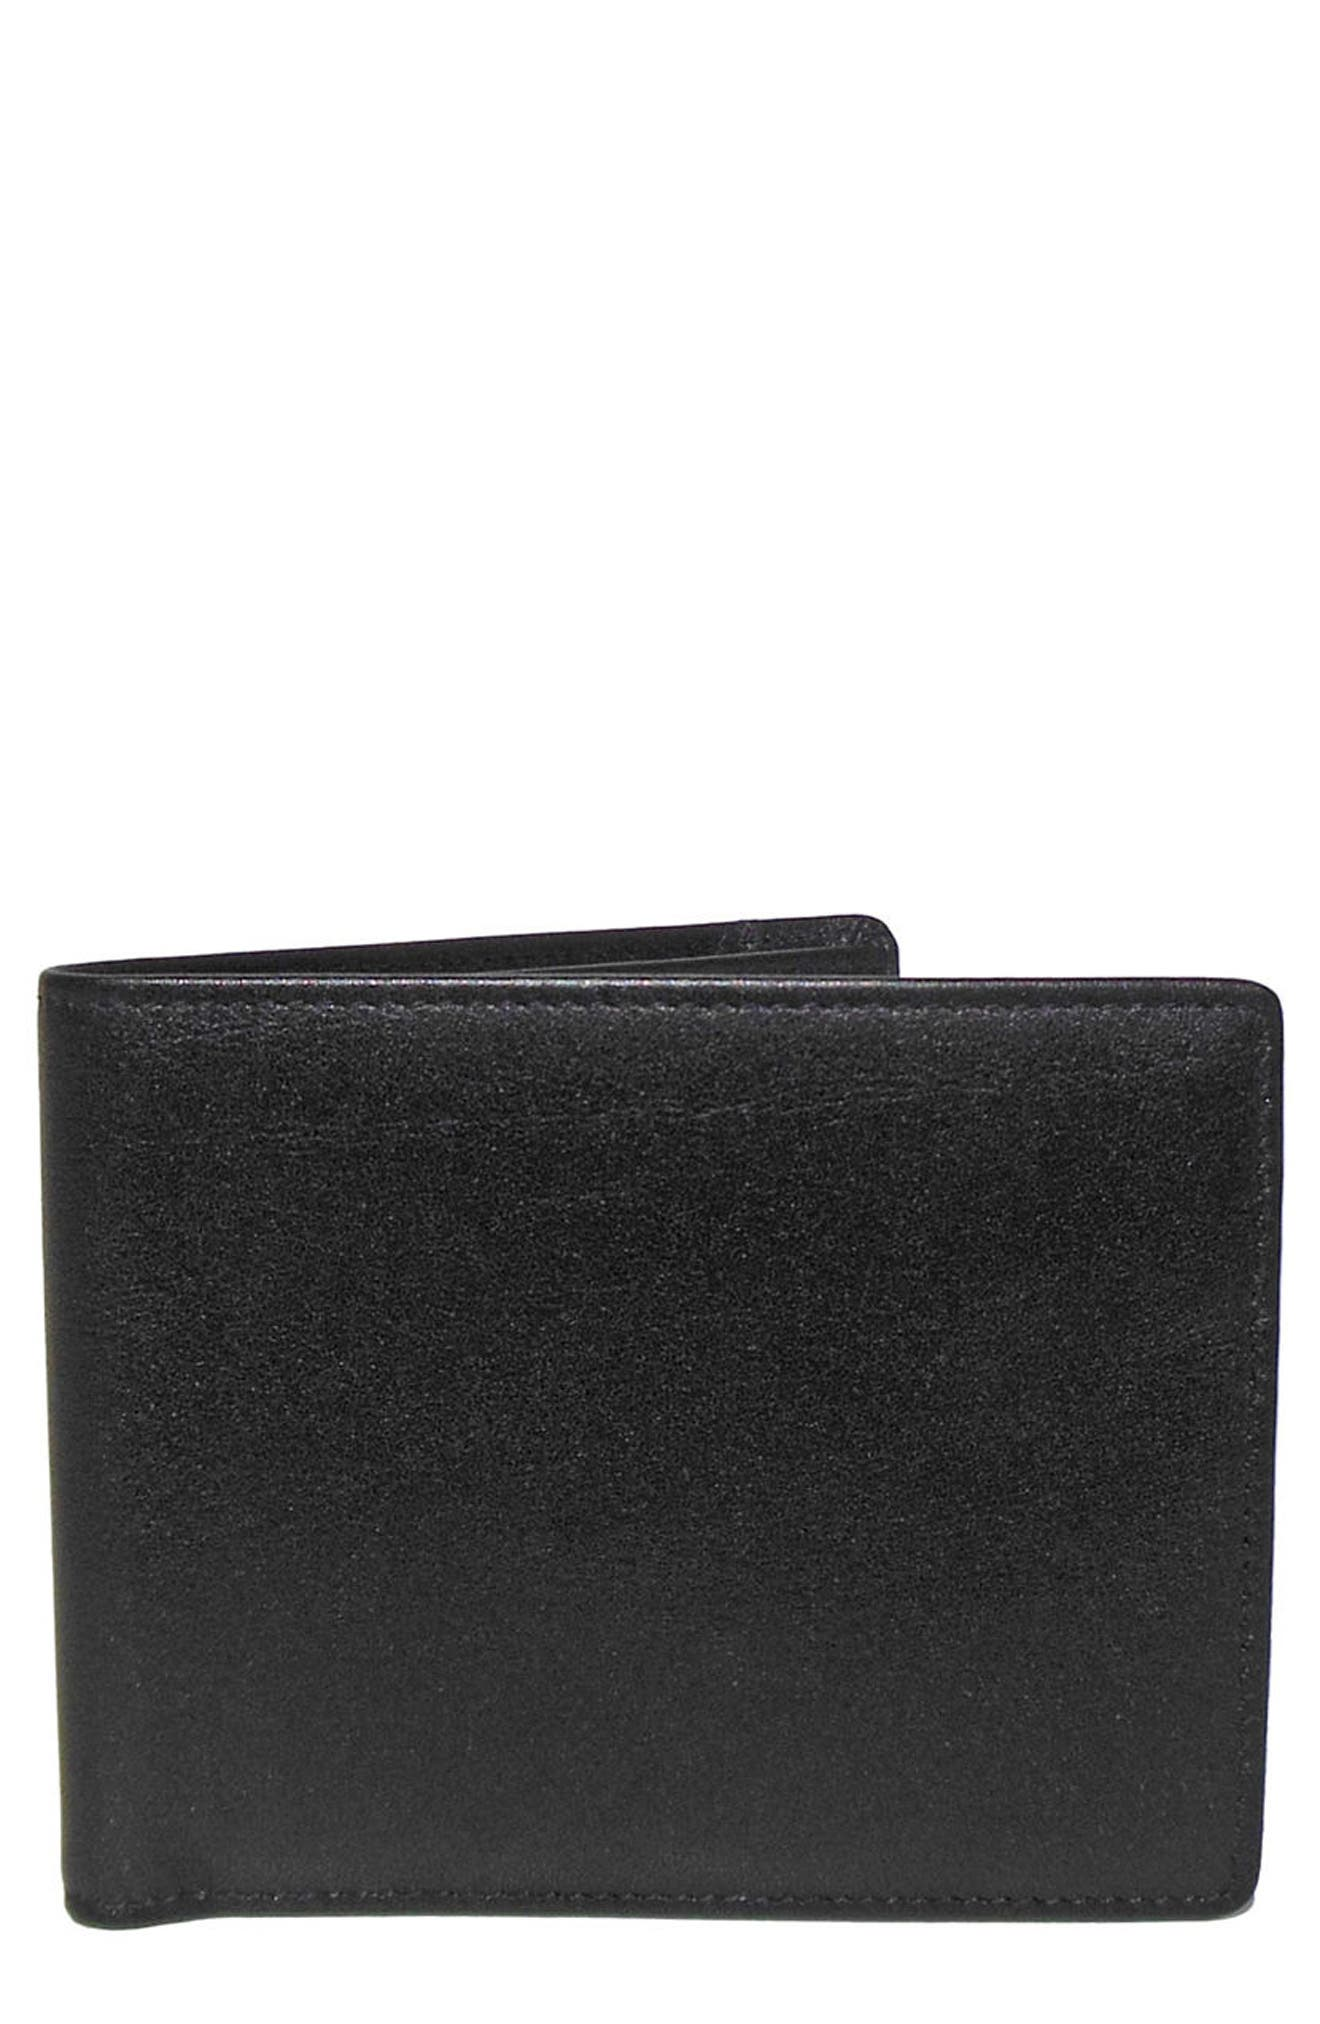 Boconi Grant Leather Wallet